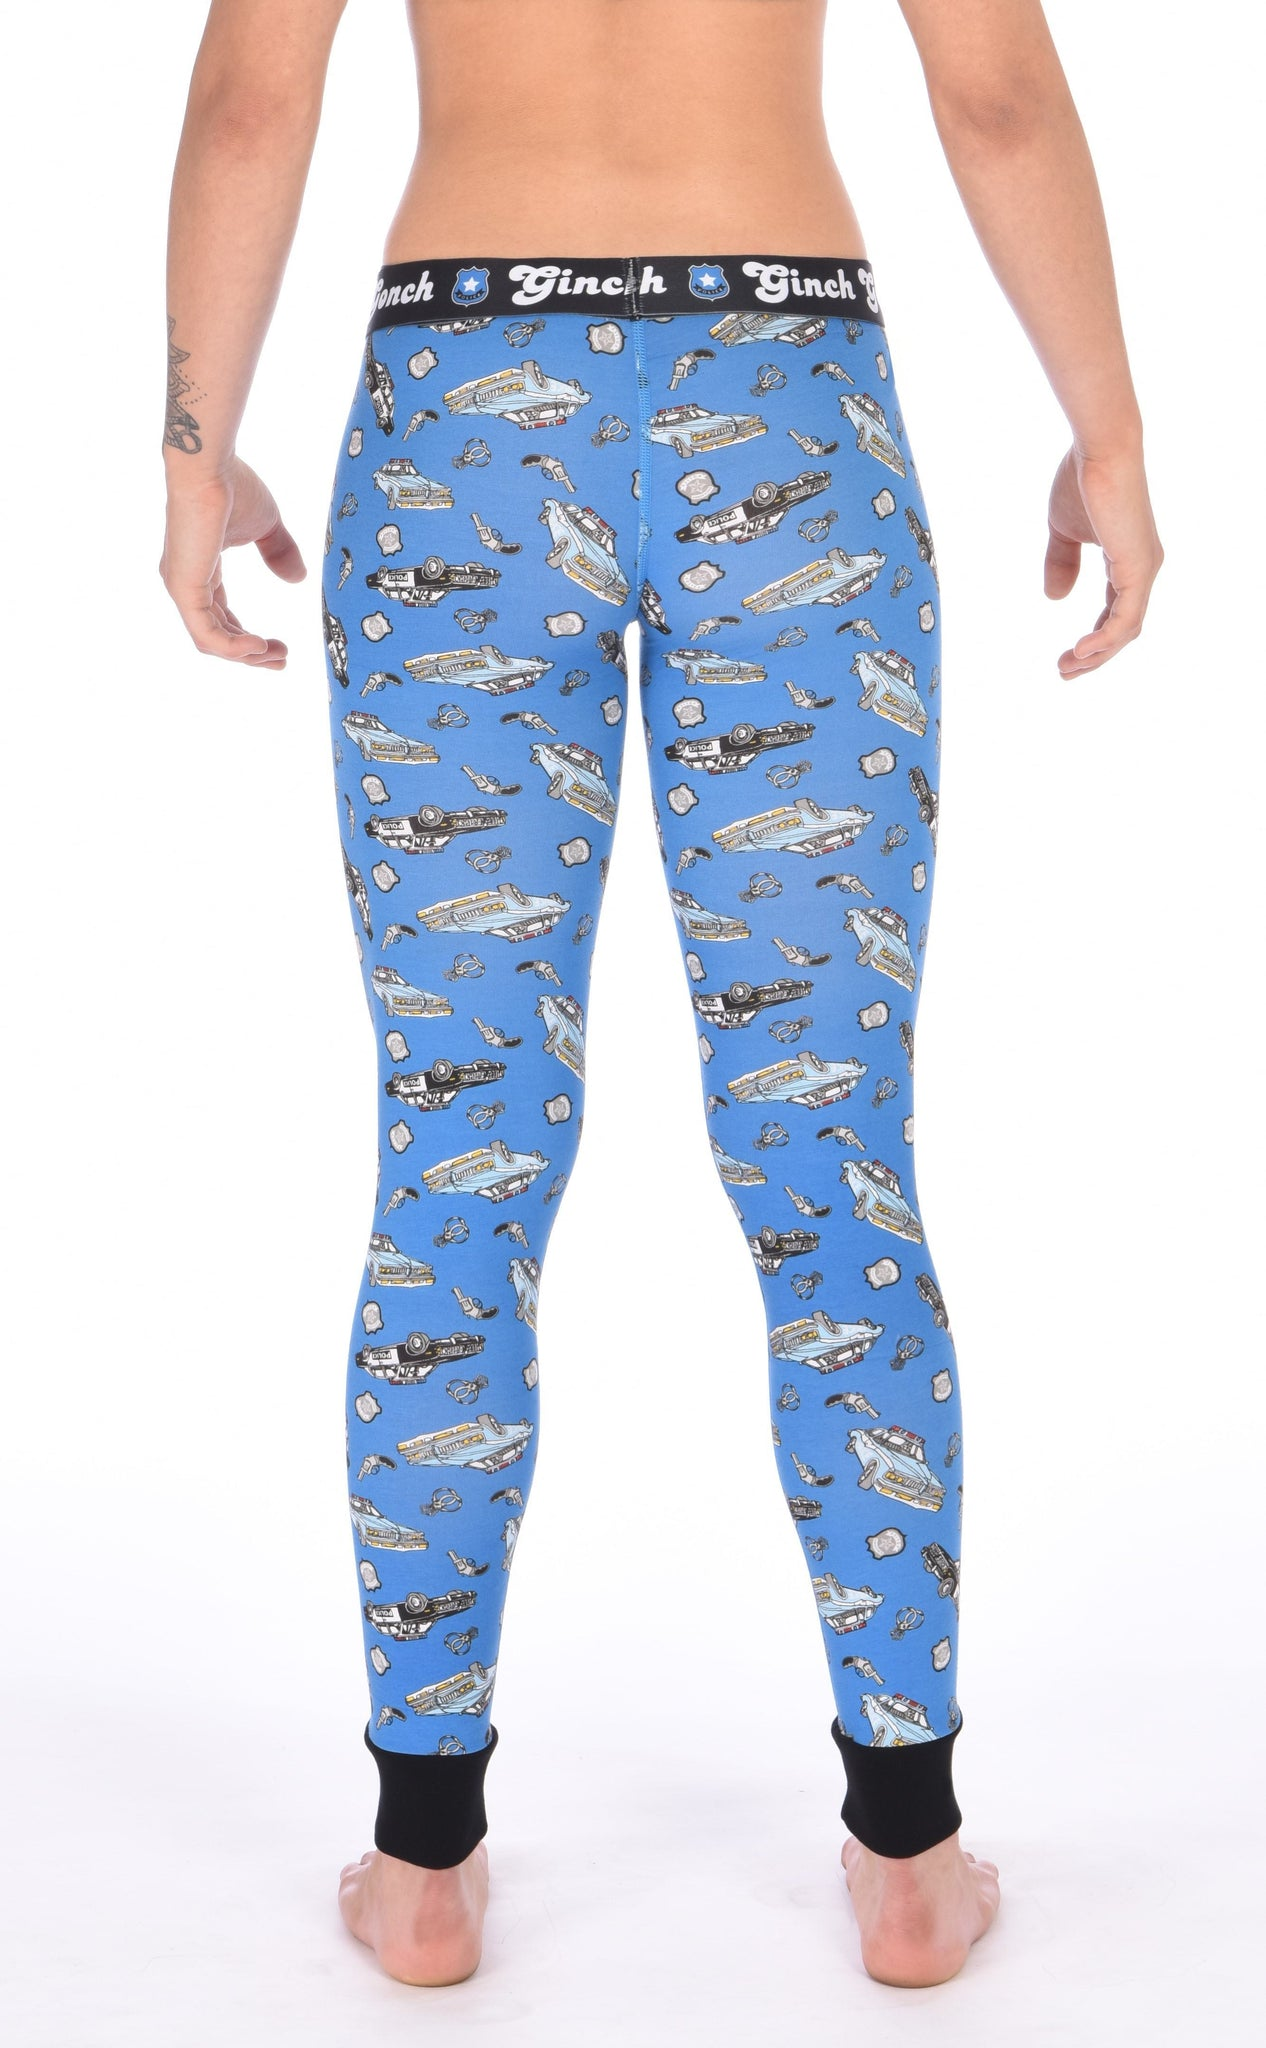 Ginch Gonch GG Patrol long john legging women's long underwear y front blue fabric with cop cars, badges, hand cuffs, and guns. Black trim and black printed waistband back